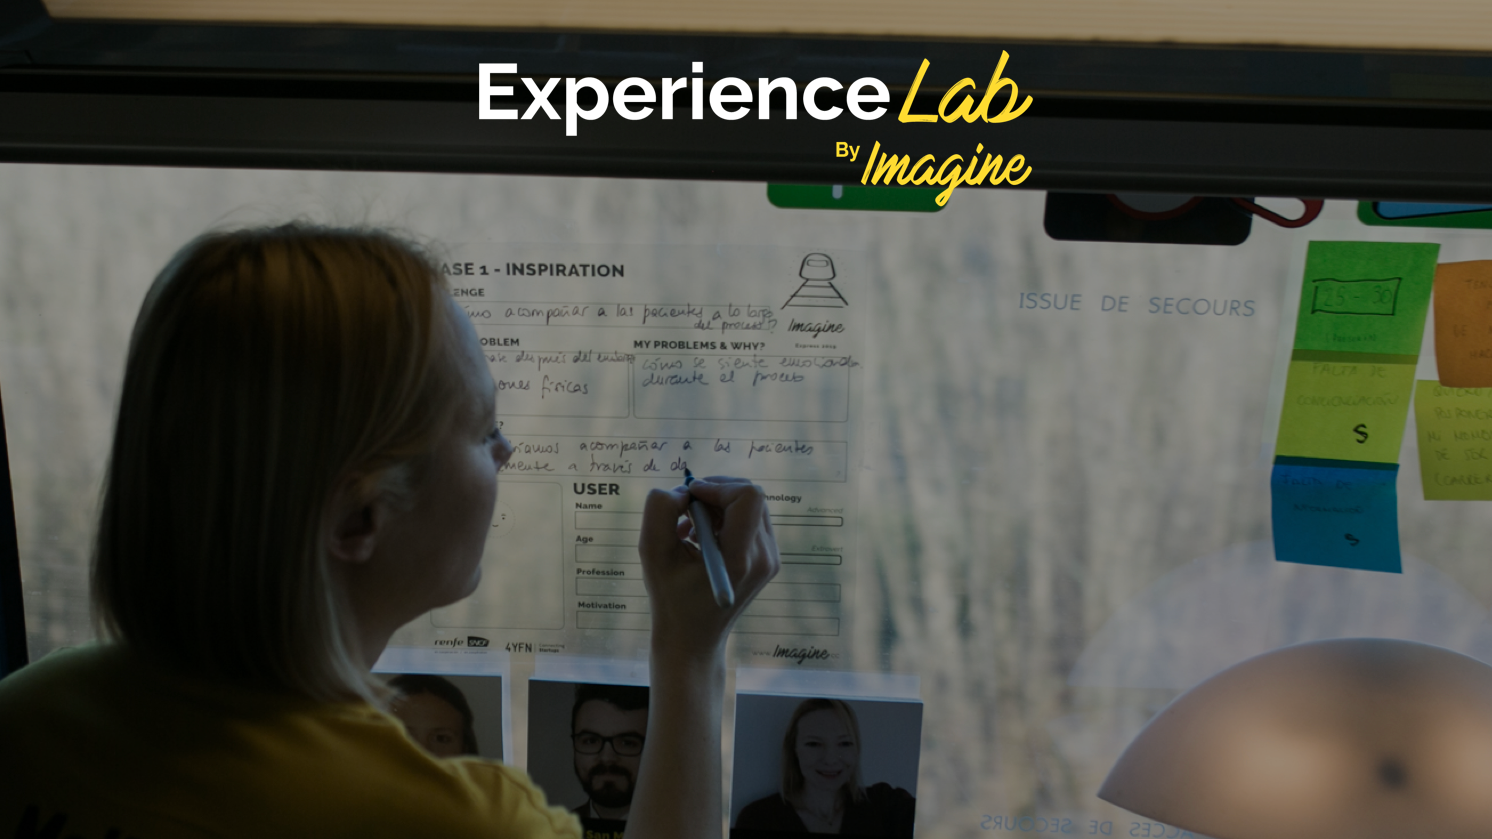 Experience_Lab by Imagine